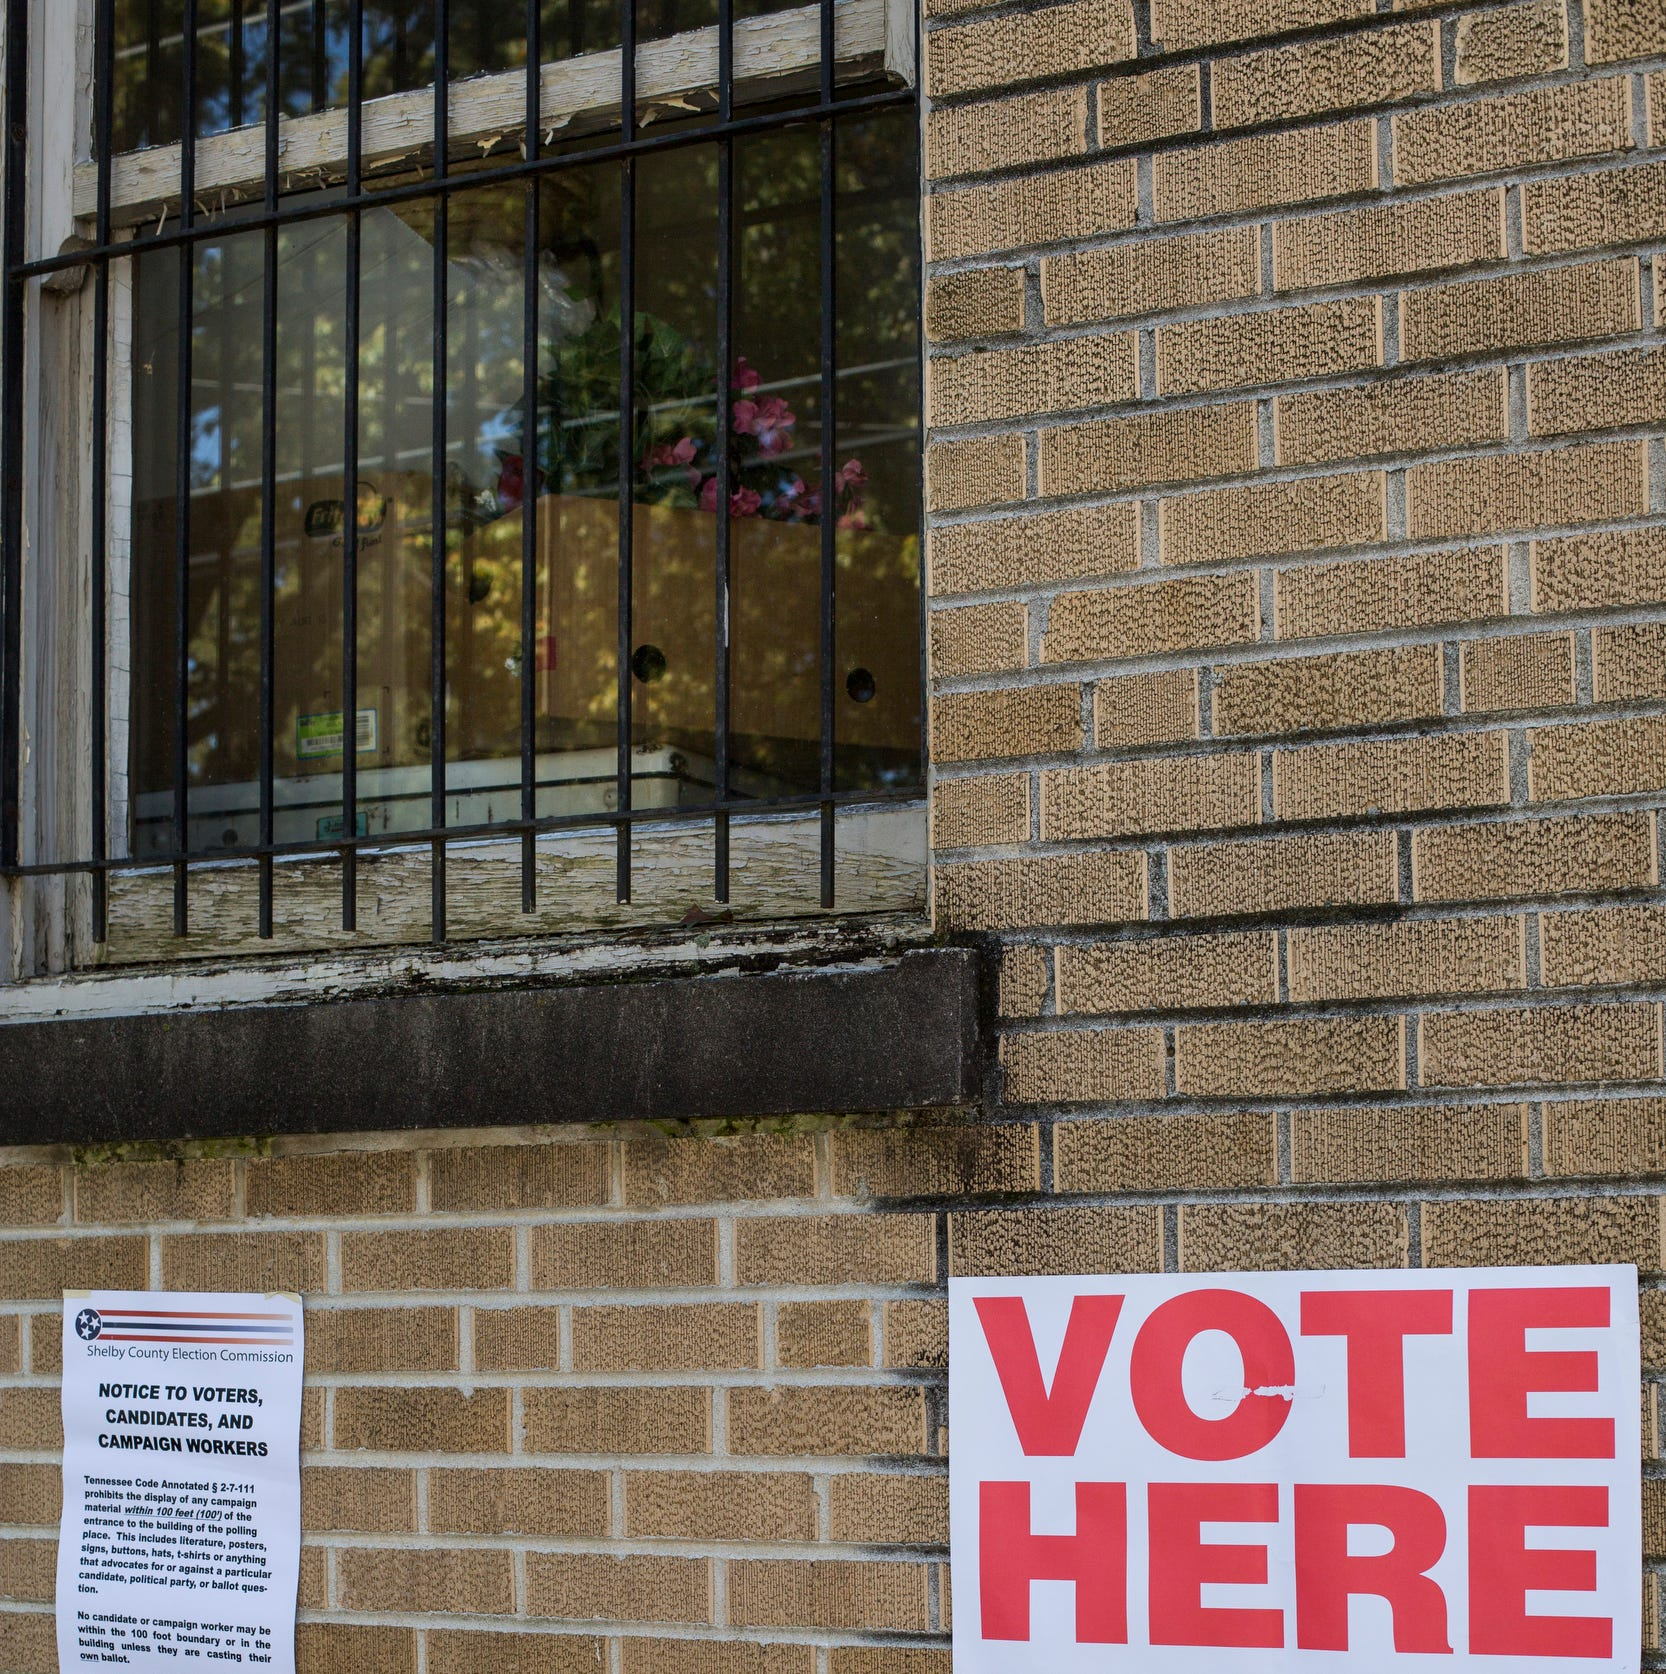 National voting security and access discussion comes to Memphis | Opinion